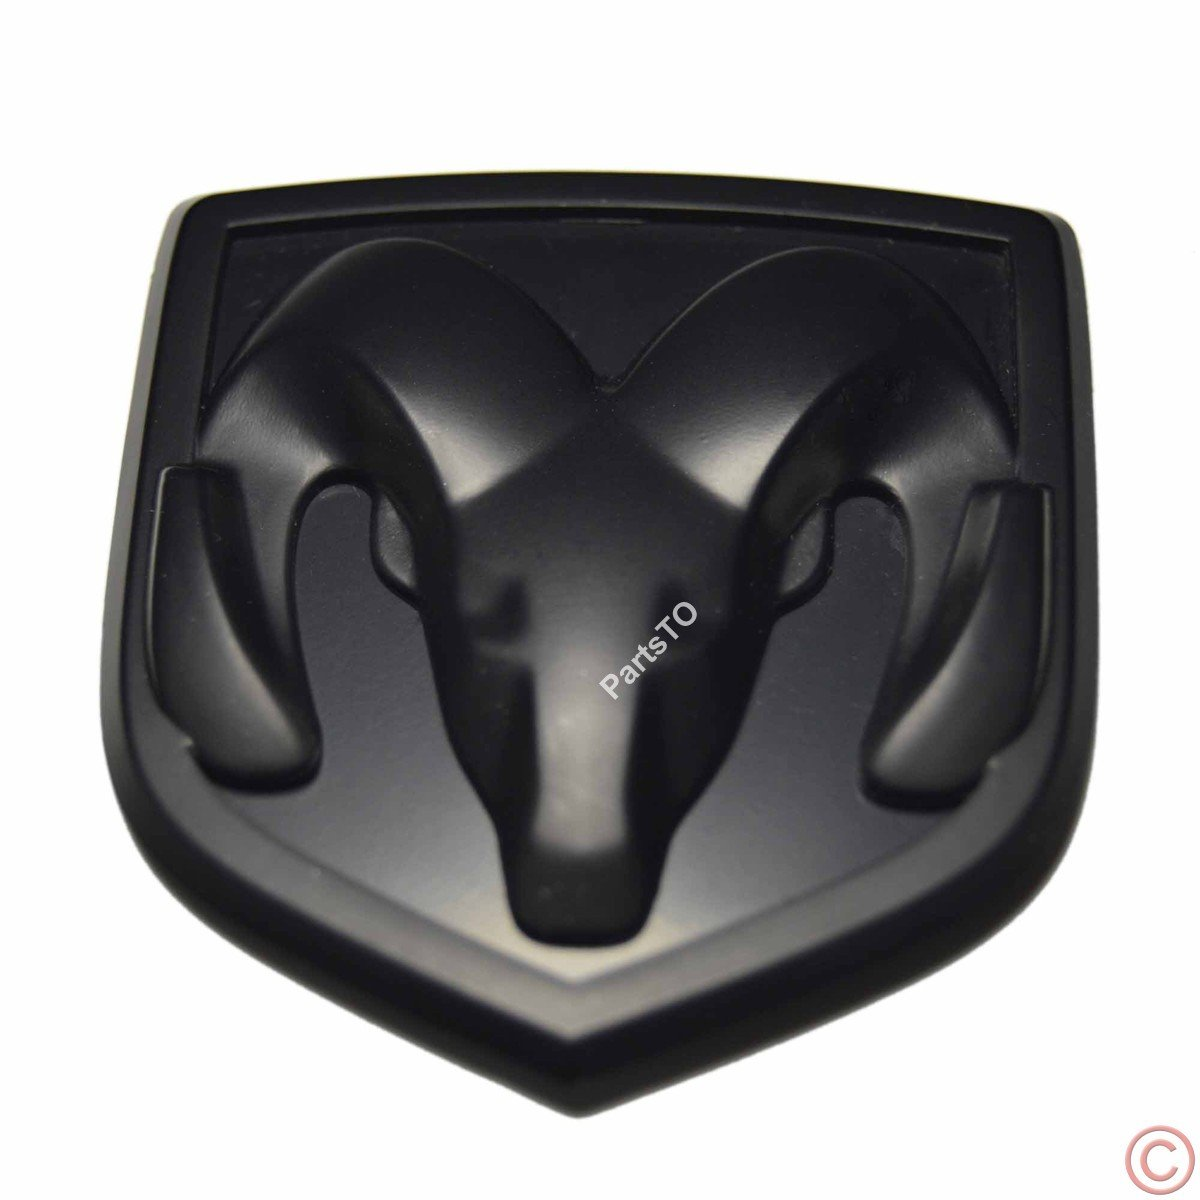 PartsTo Front Hood Grille or Rear Trunk Emblem Badge for Dodge Charger Challenger Stratus Parsto